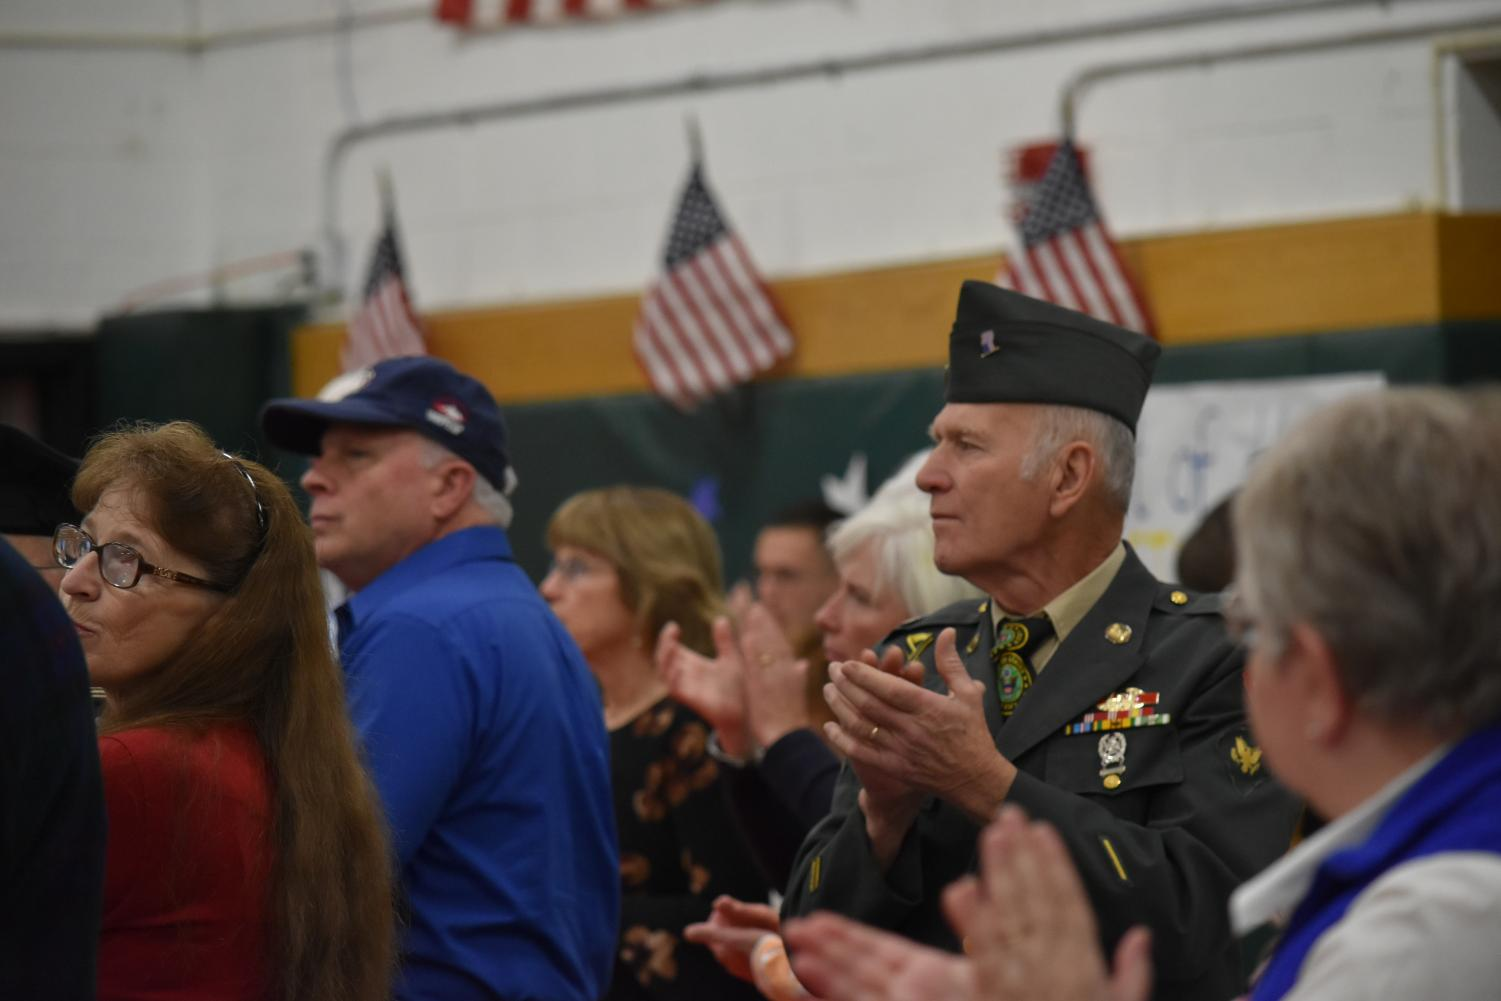 WHS+was+lucky+to+have+a+great+crowd+of+veterans+honoring+us+at+the+show.